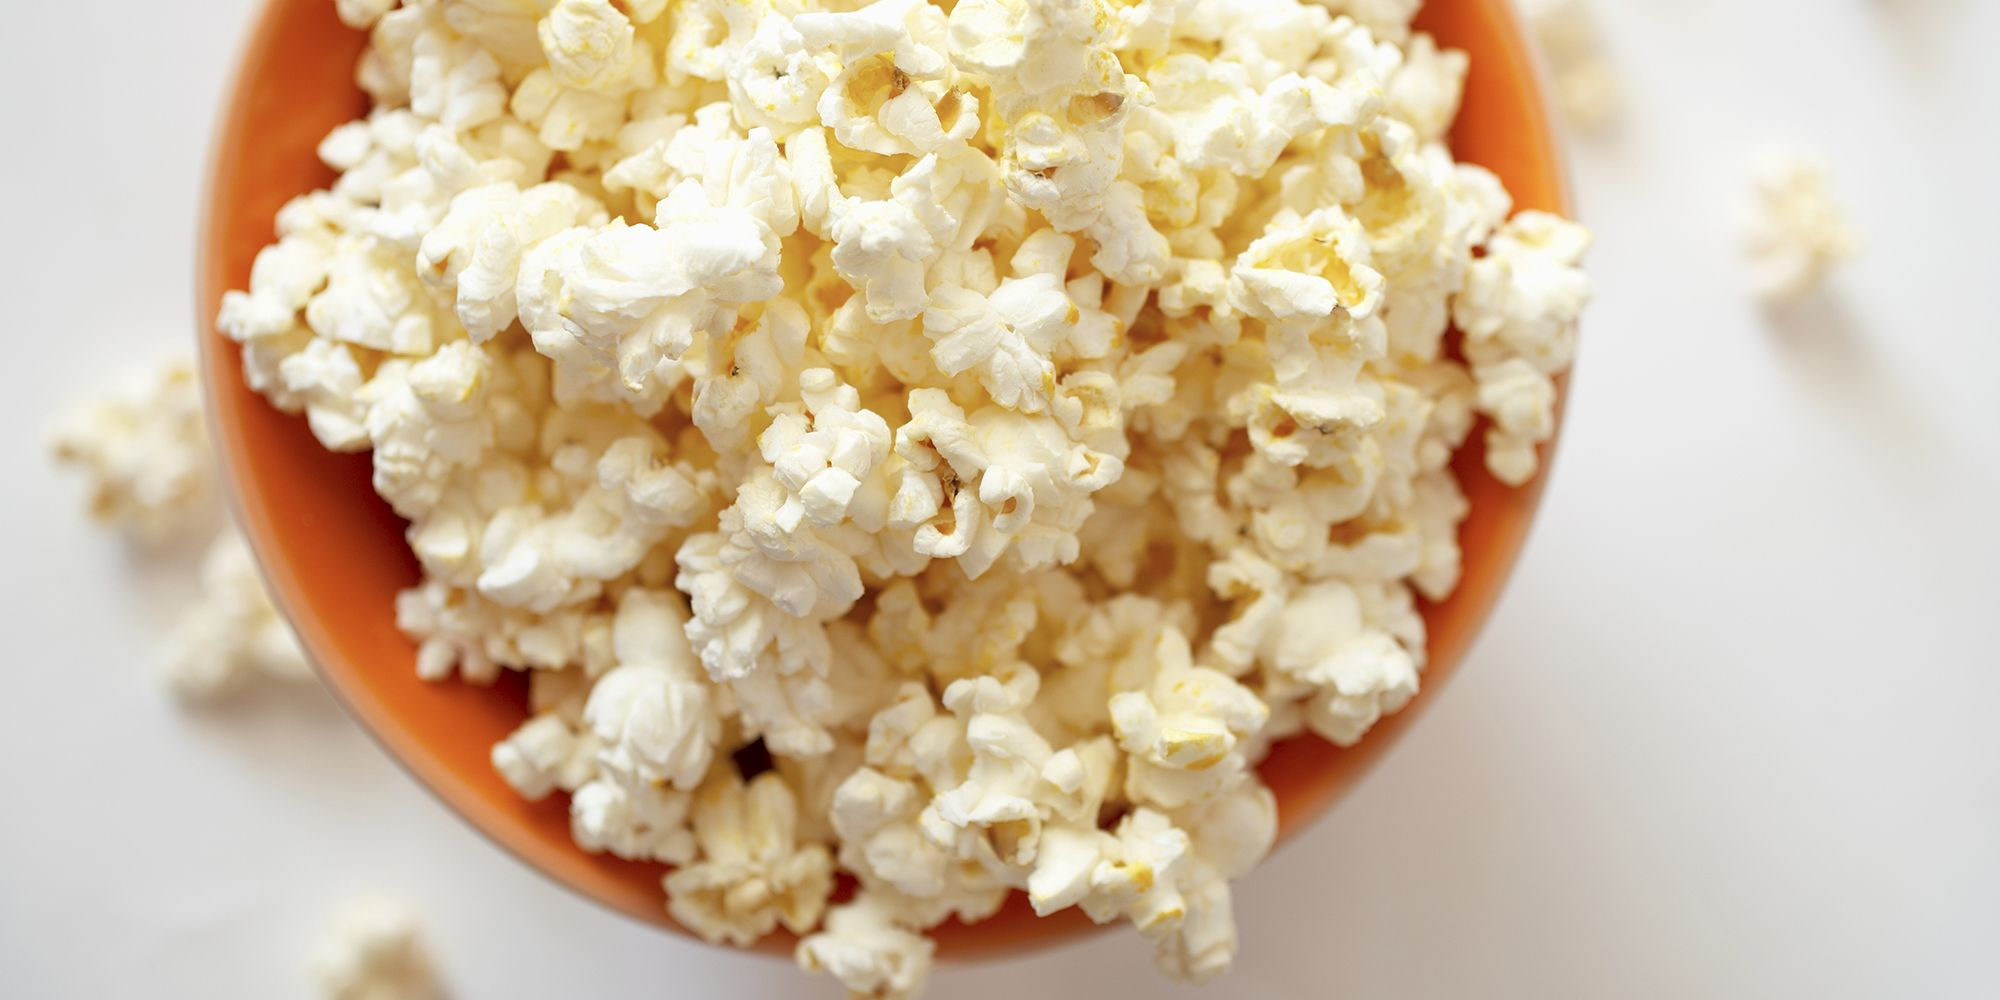 Can Dogs Eat Popcorn? - Is Popcorn Good or Bad for Dogs to Have?